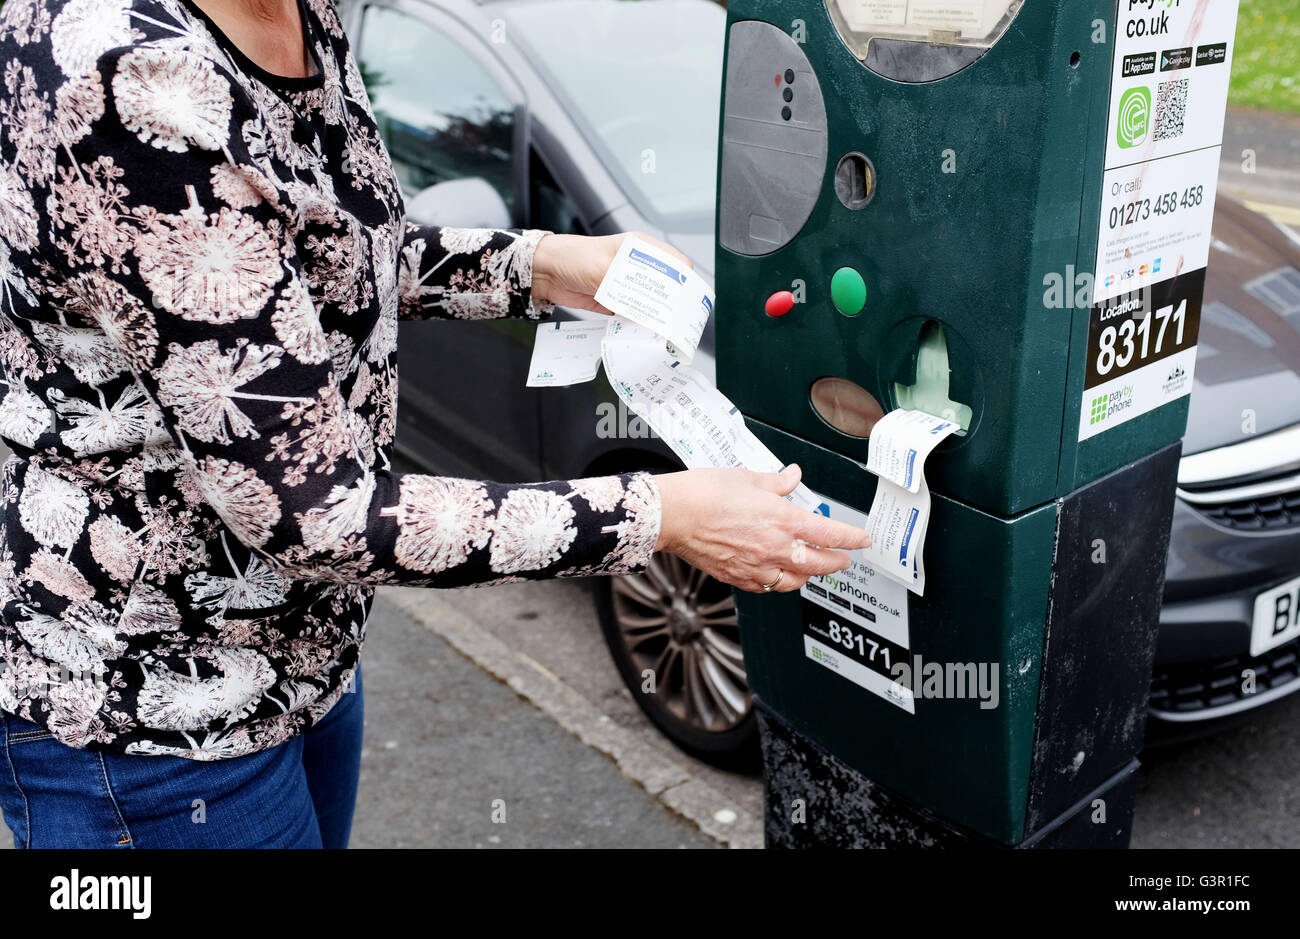 Broken parking meter in city of Brighton printing out useless tickets with frustrated female motorist UK Stock Photo